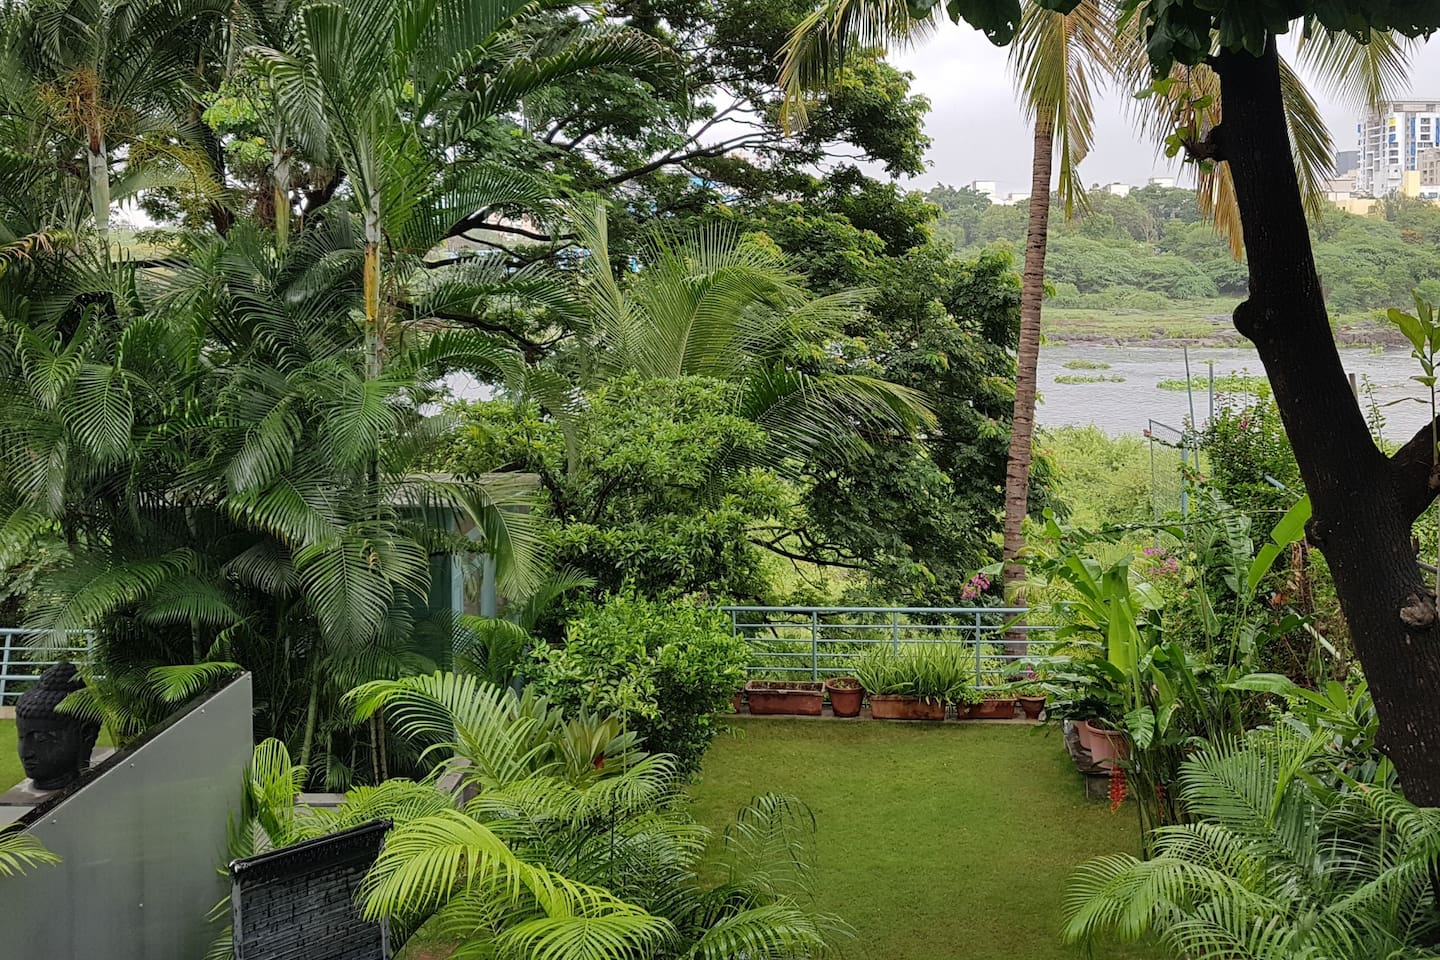 Spectacular Garden and River View from the room.